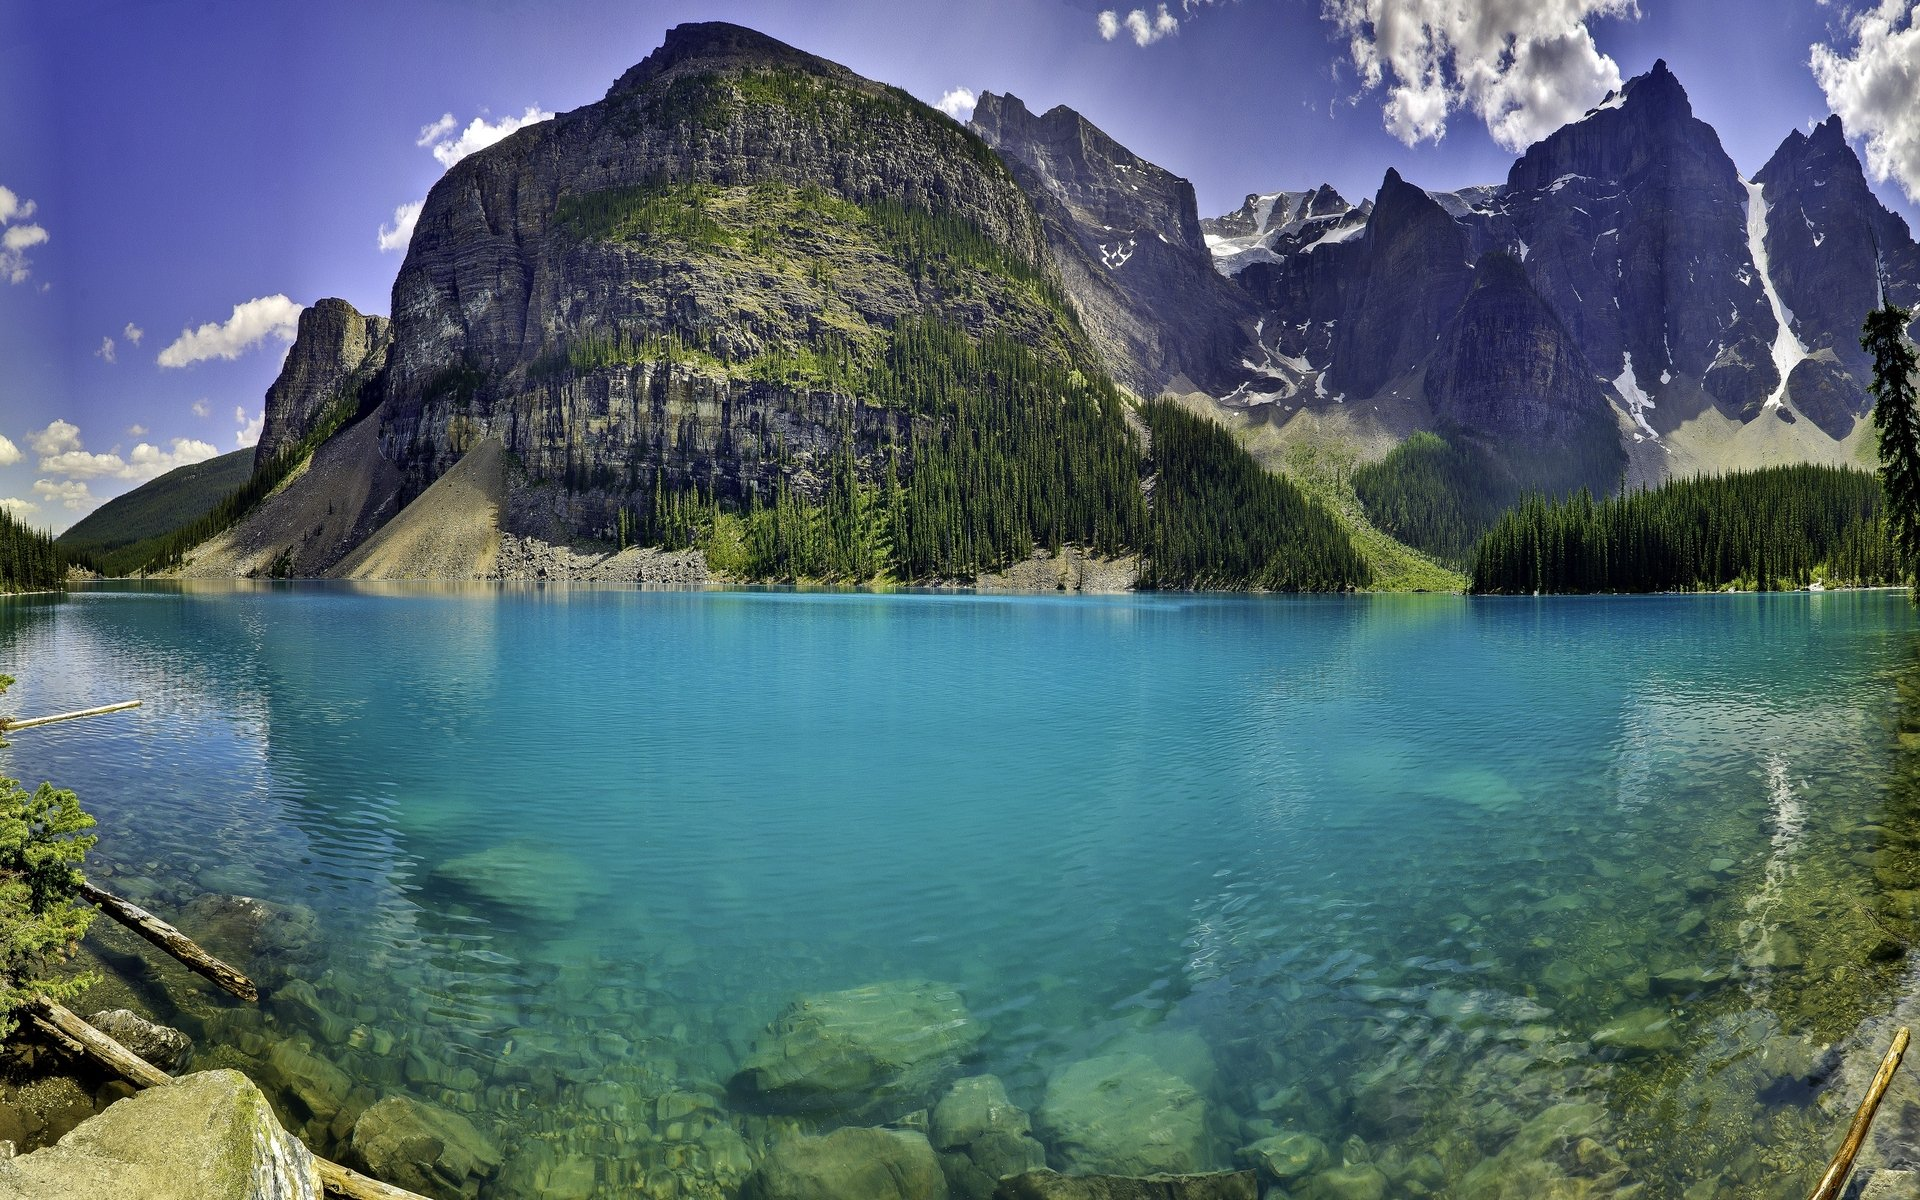 Canada 1366x768 Wallpaper Download Moraine Lake Canada 1440x900 1920x1200